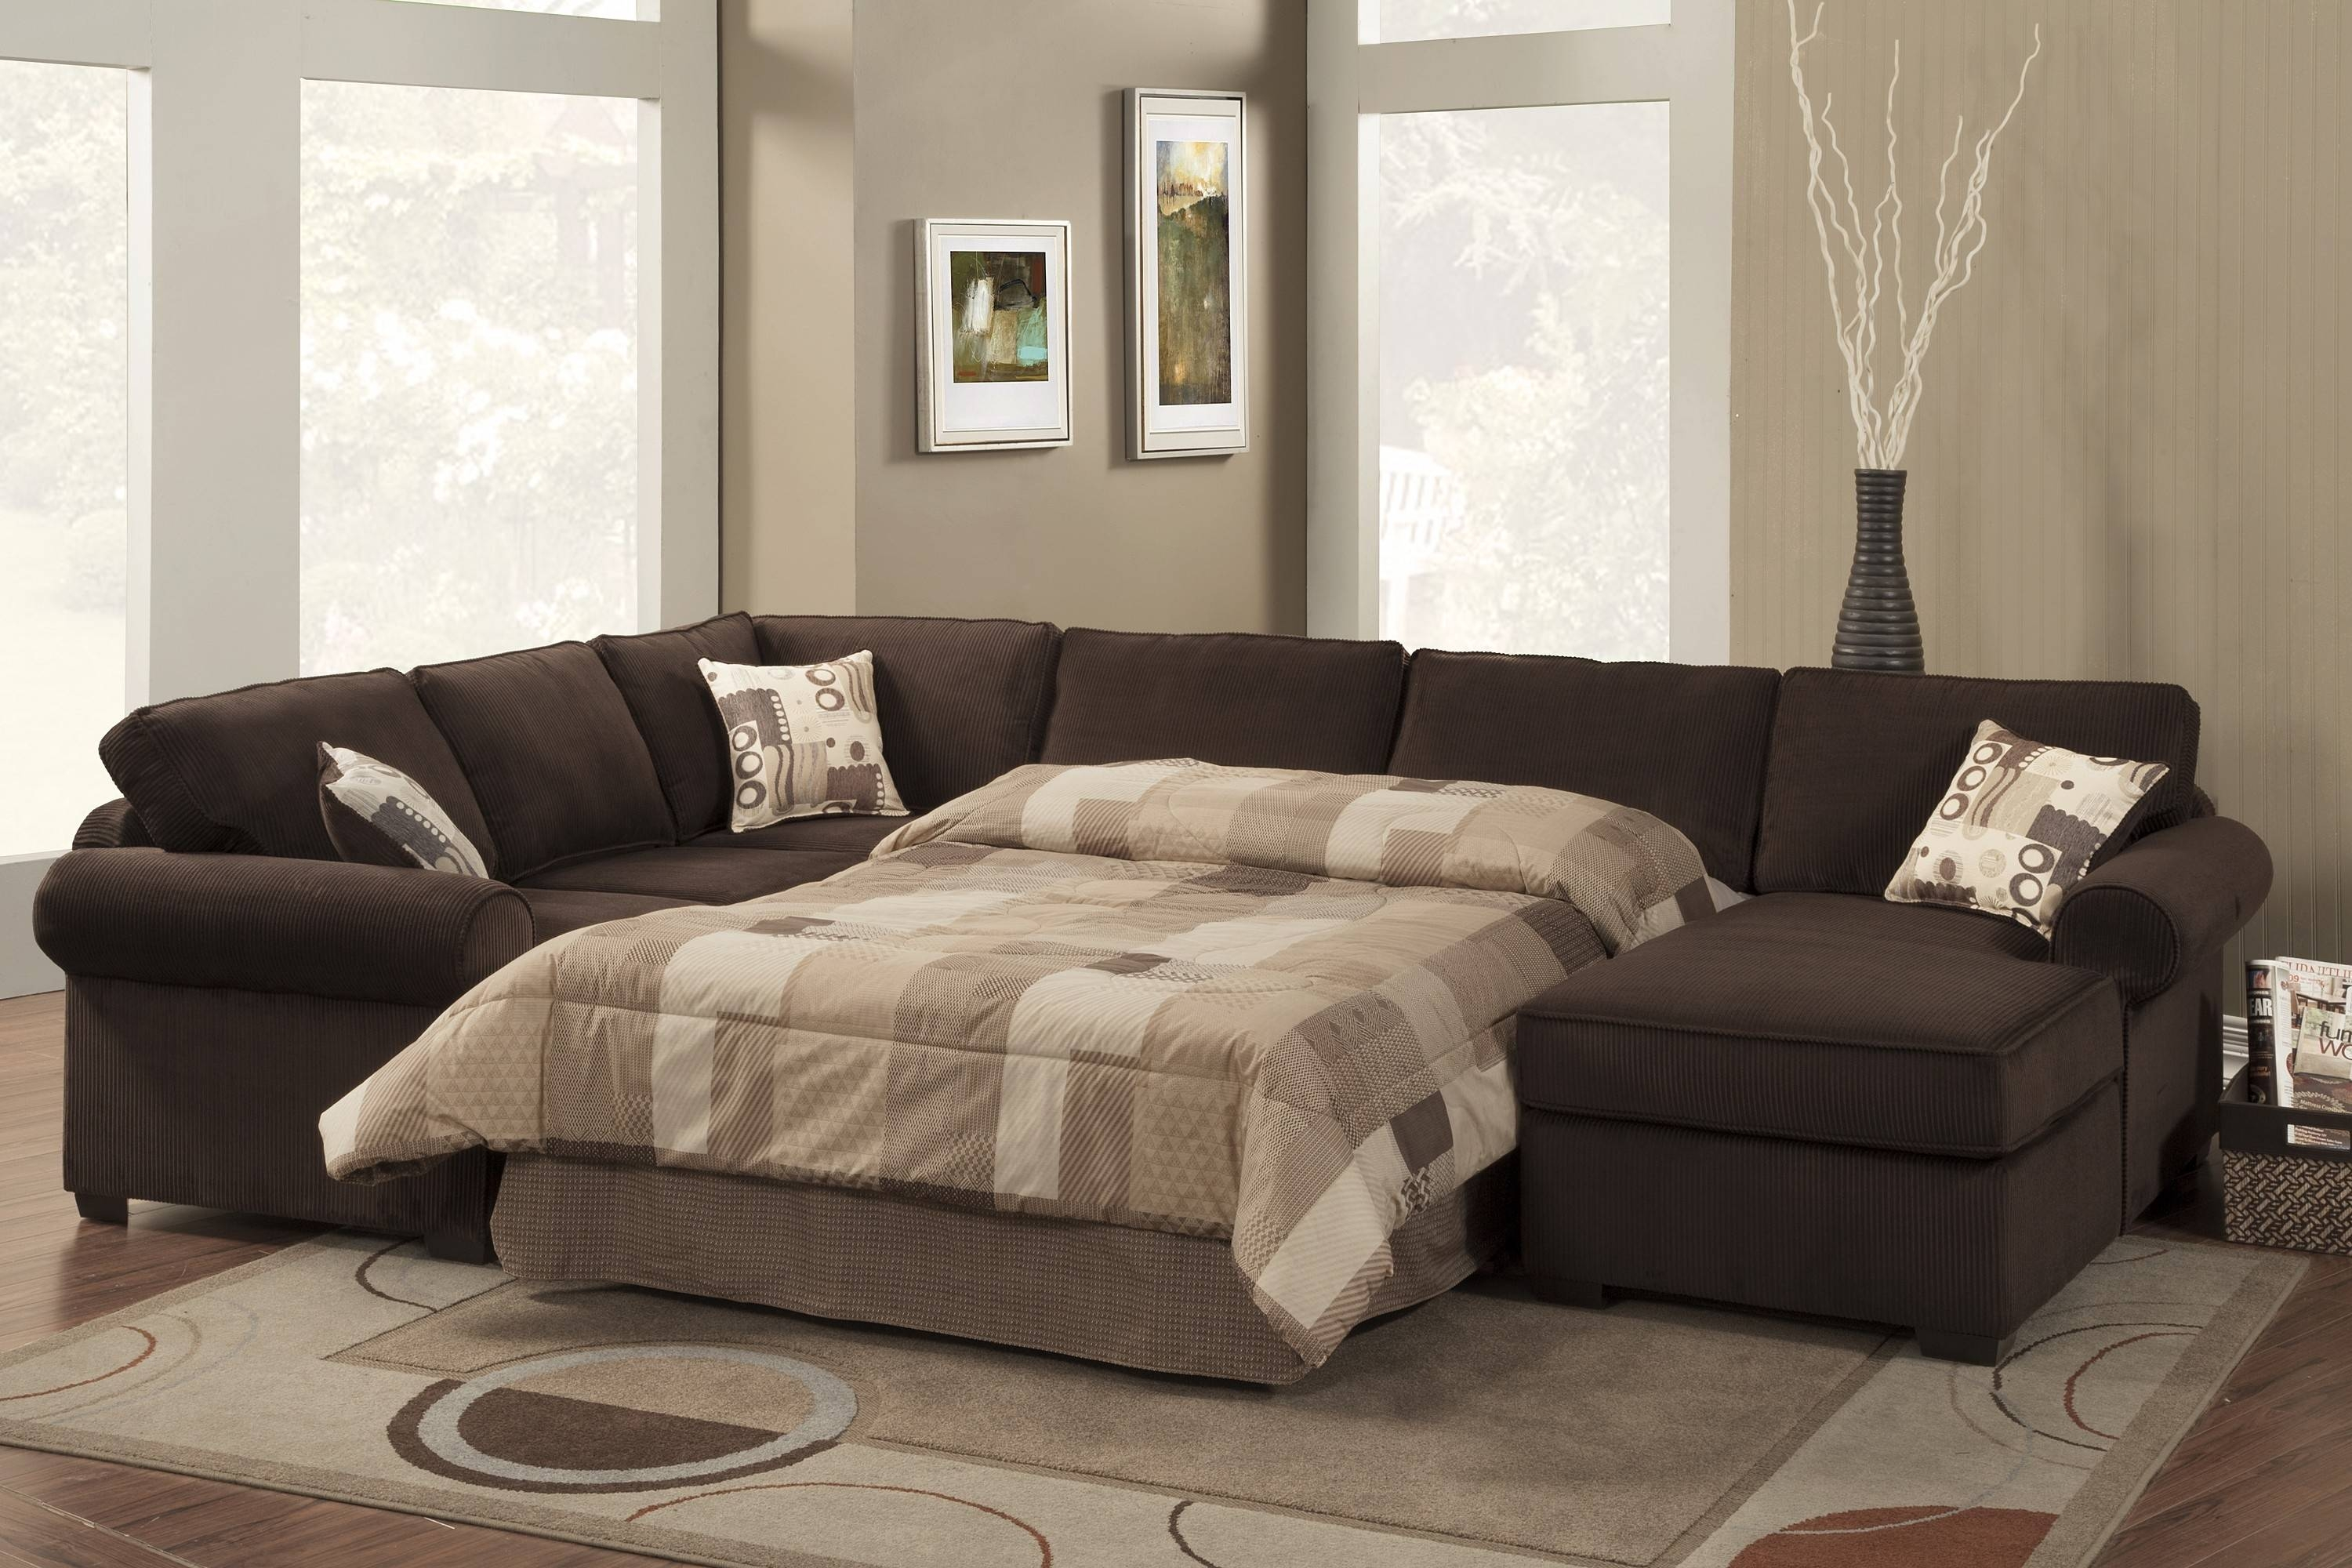 Sofas Center : Stirring Pull Out Sleeper Sofa Picture Design Beds within Ikea Sectional Sleeper Sofa (Image 23 of 25)